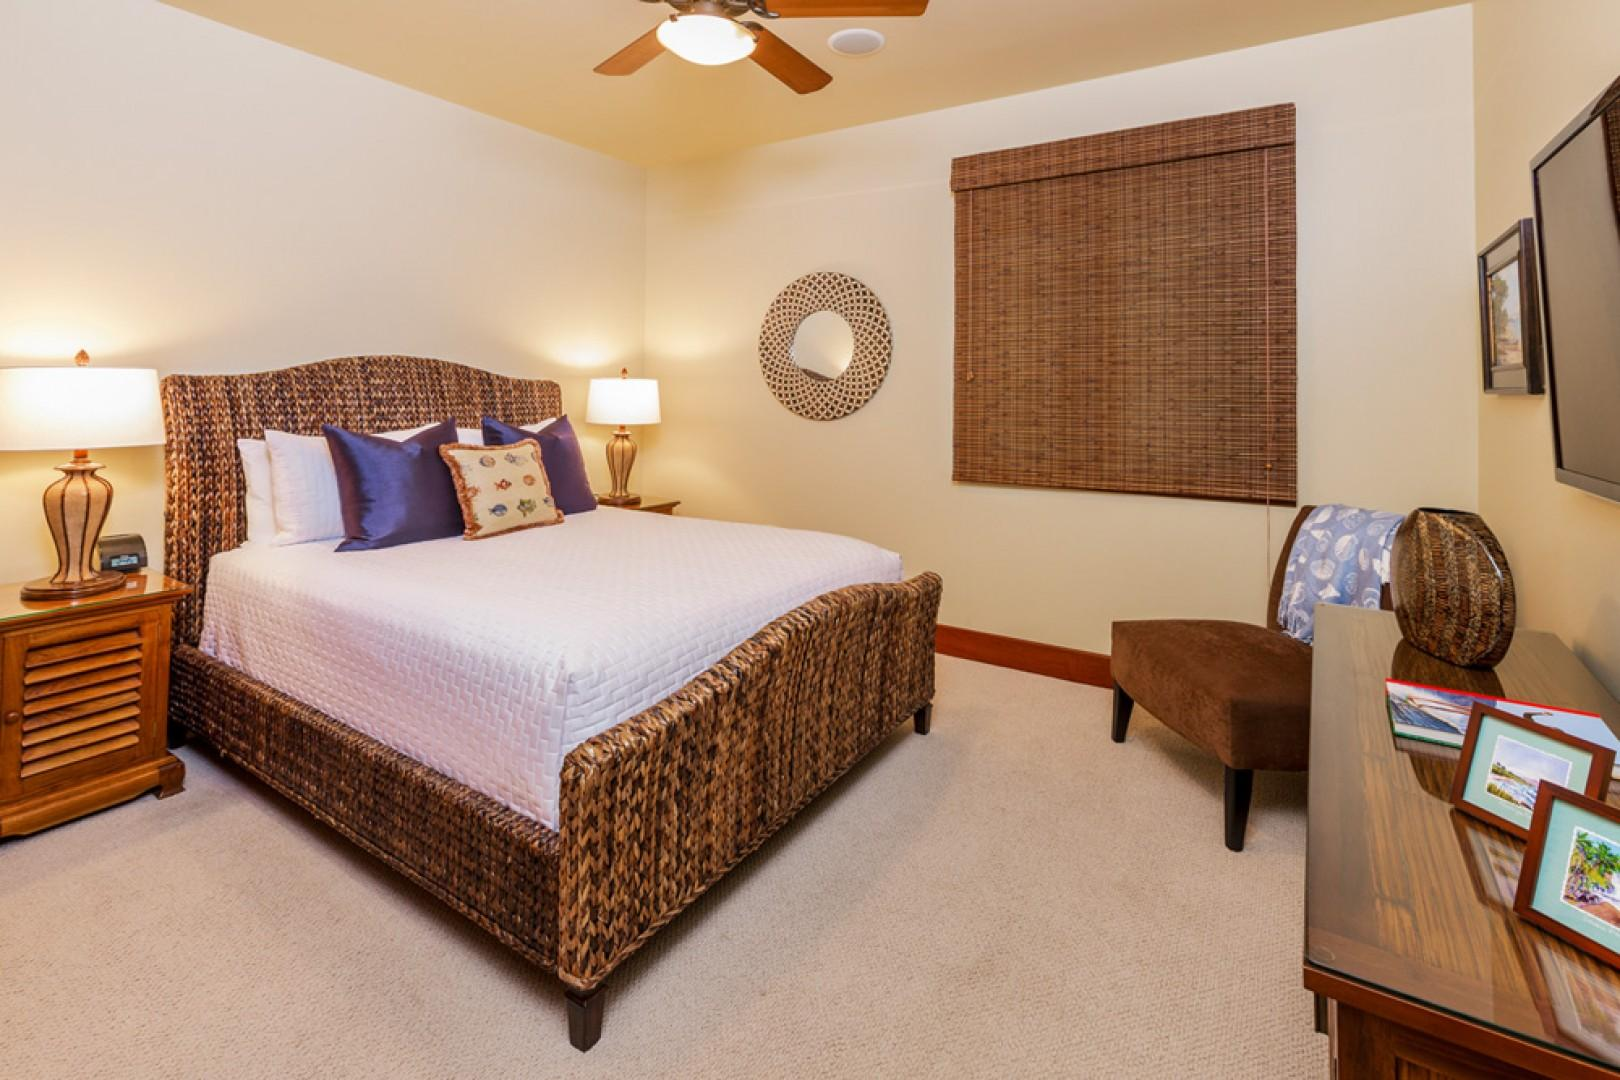 L509 Sandcastles Suite Third Master Bedroom with Queen Bed, Closet and Tub/Shower Private Bath.